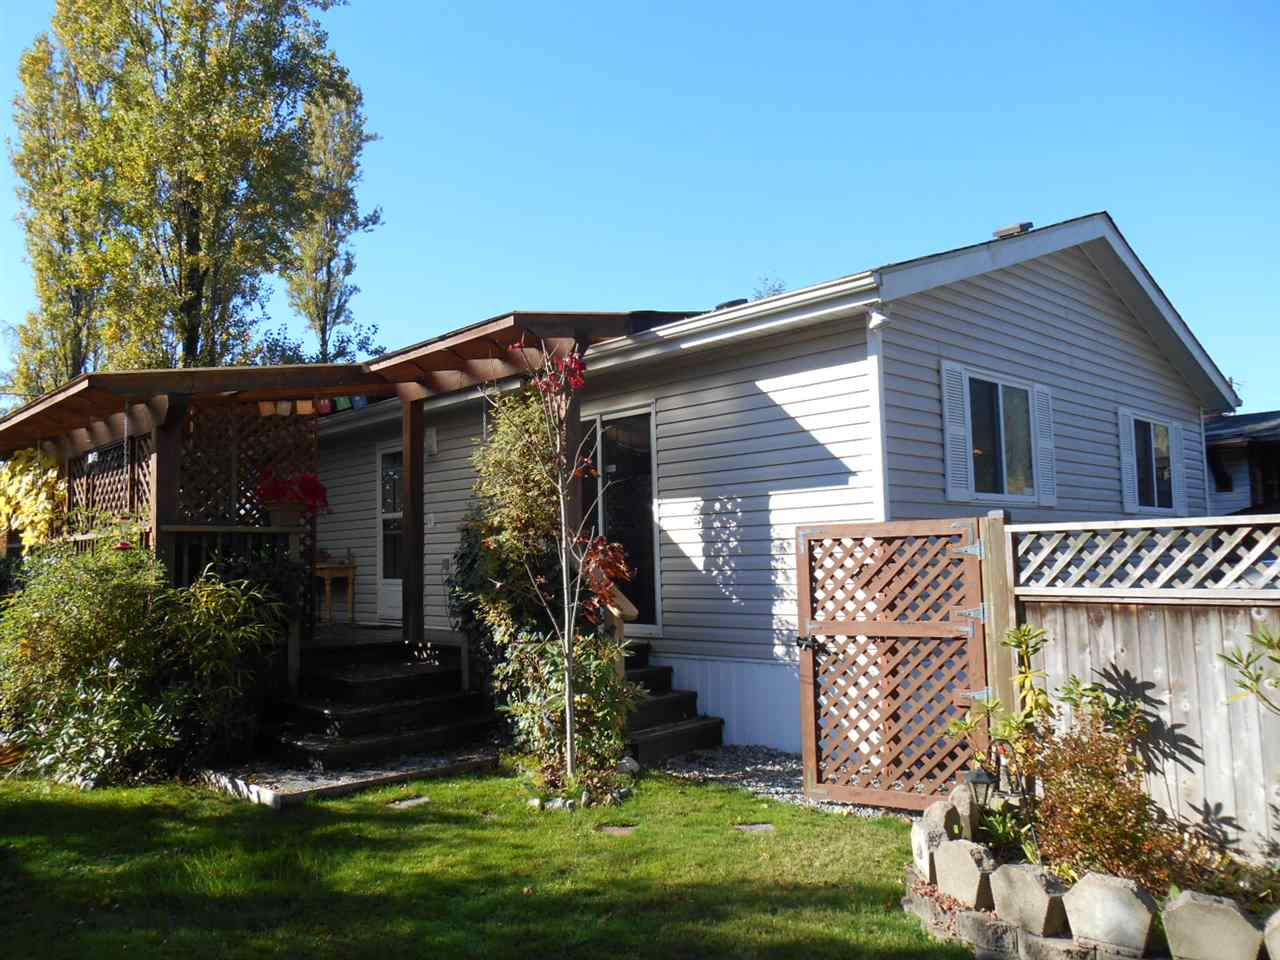 Move in ready 1100 sq ft mobile home with open layout in the main living area. Features laminate flooring, covered sundeck, fully fenced manicured yard and 2 storage sheds for garden tools. Located only minutes from Gibsons and the Ferry Terminal.